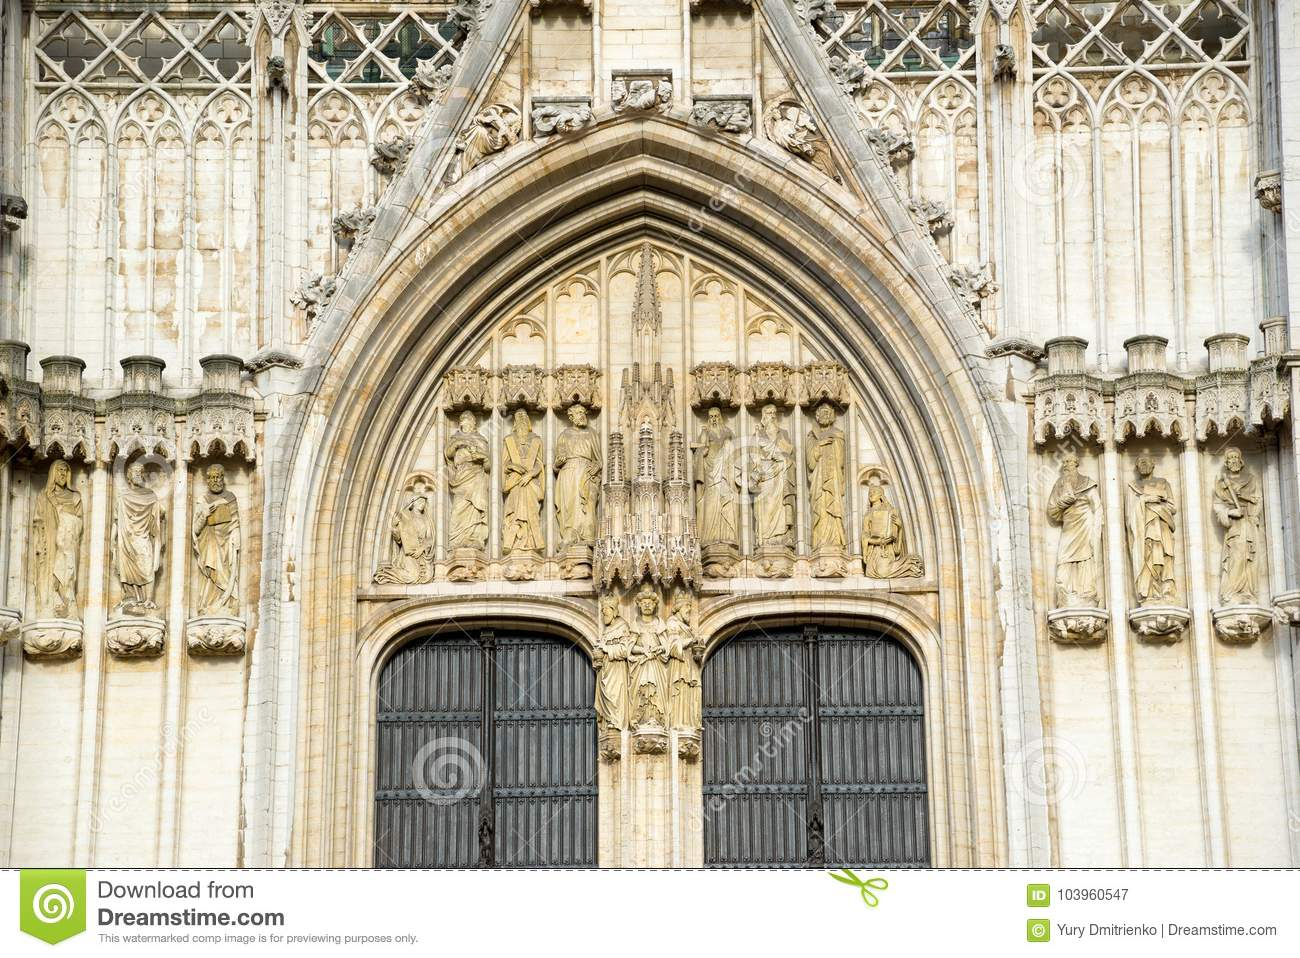 Cathedral of St. Michael and St. Gudula in Brussels, Belgium